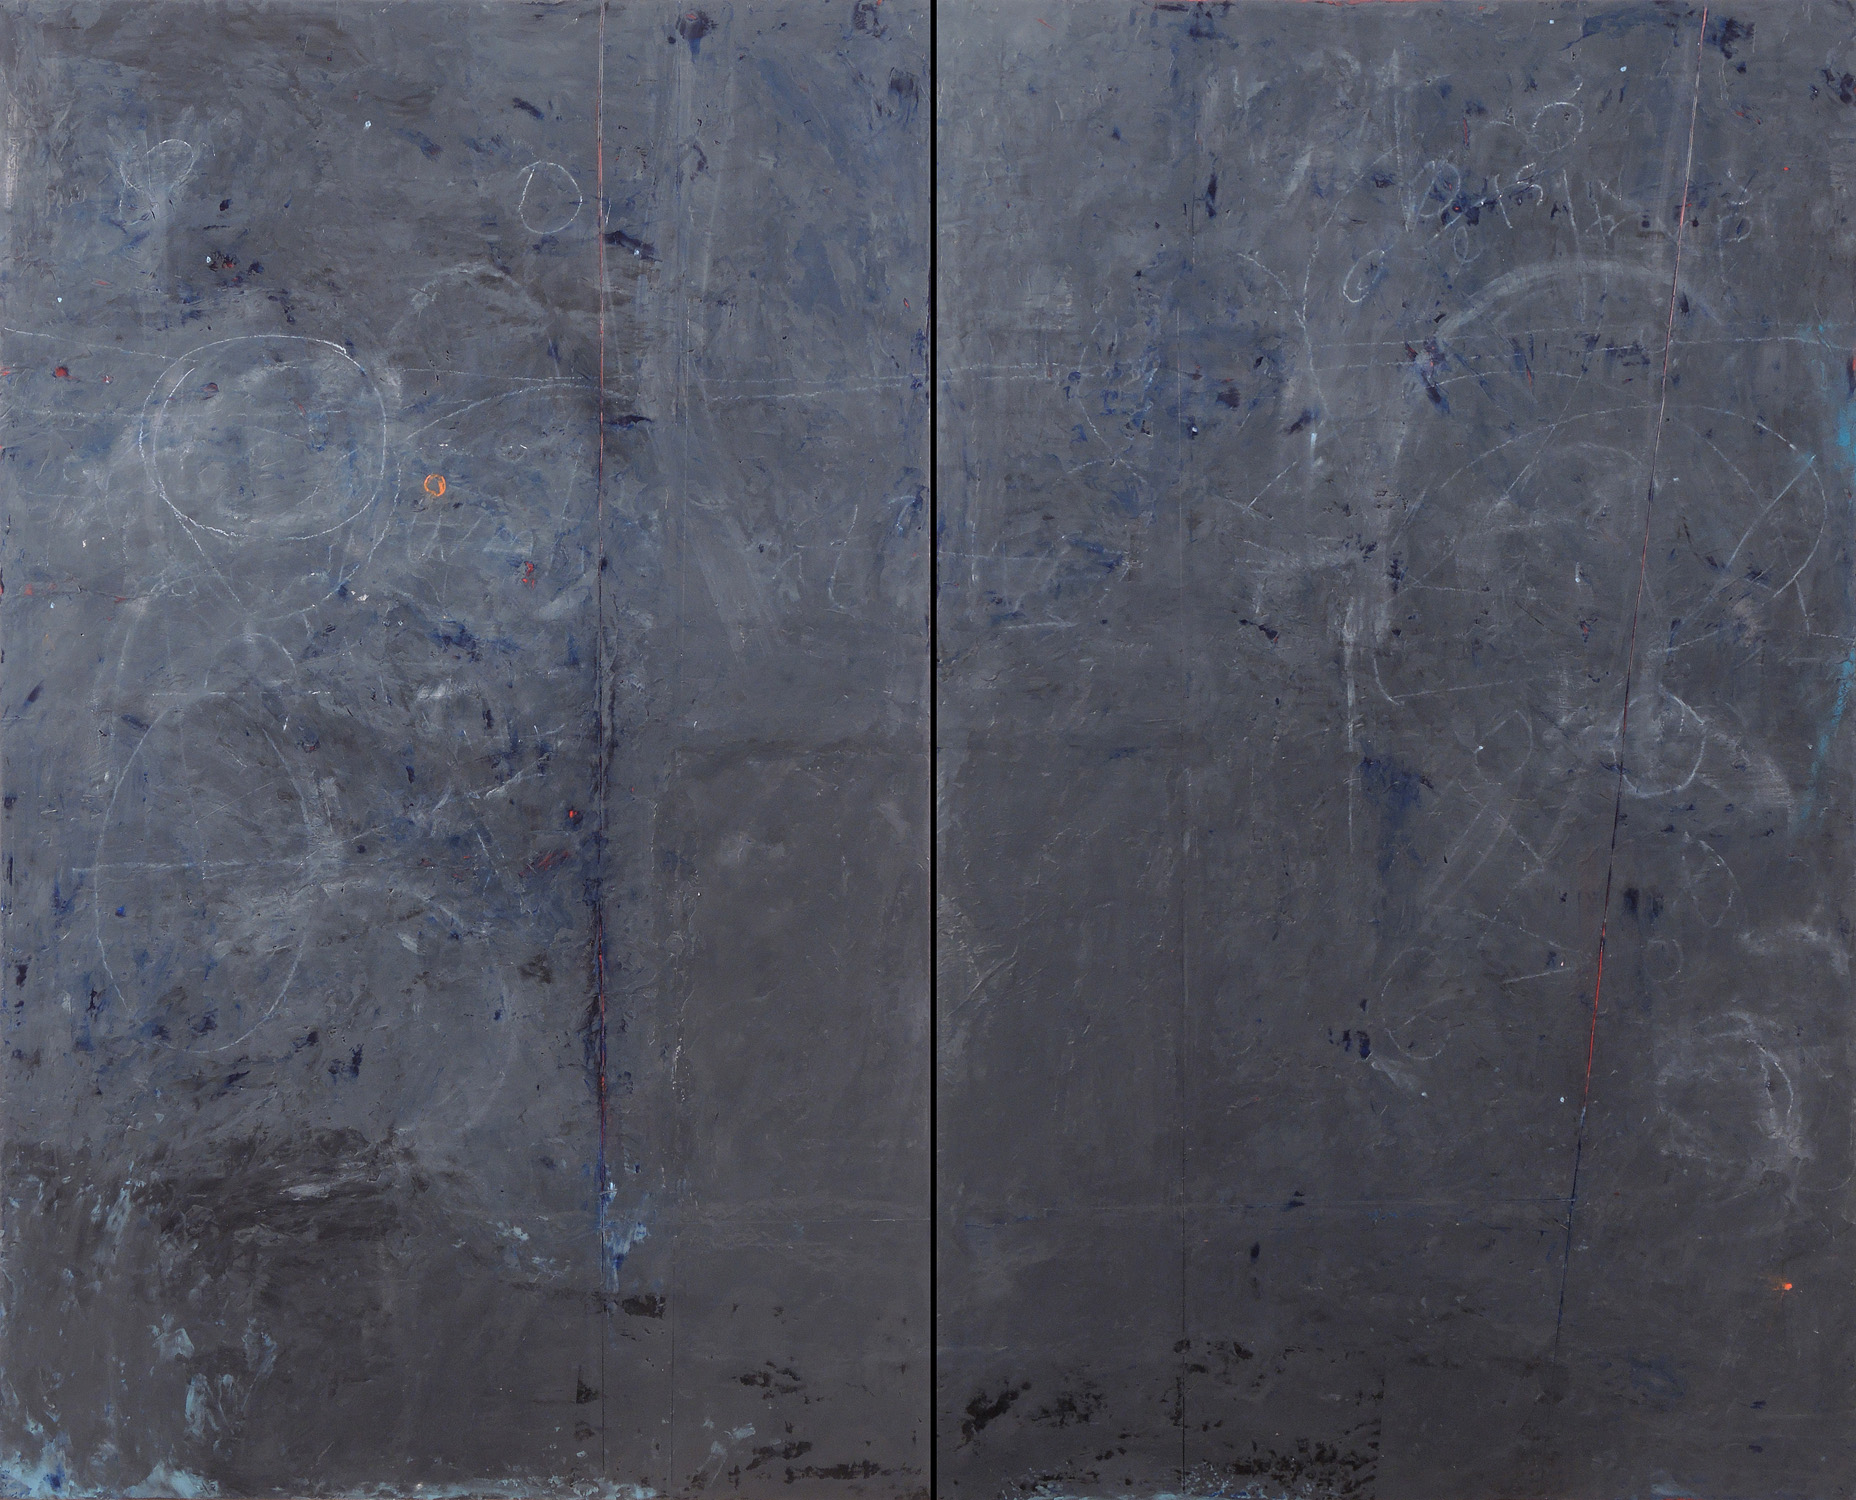 """Dark Matter, 48"""" x 60"""" x 1.5"""", Diptych, encaustic and oil on wood panels, 2013"""